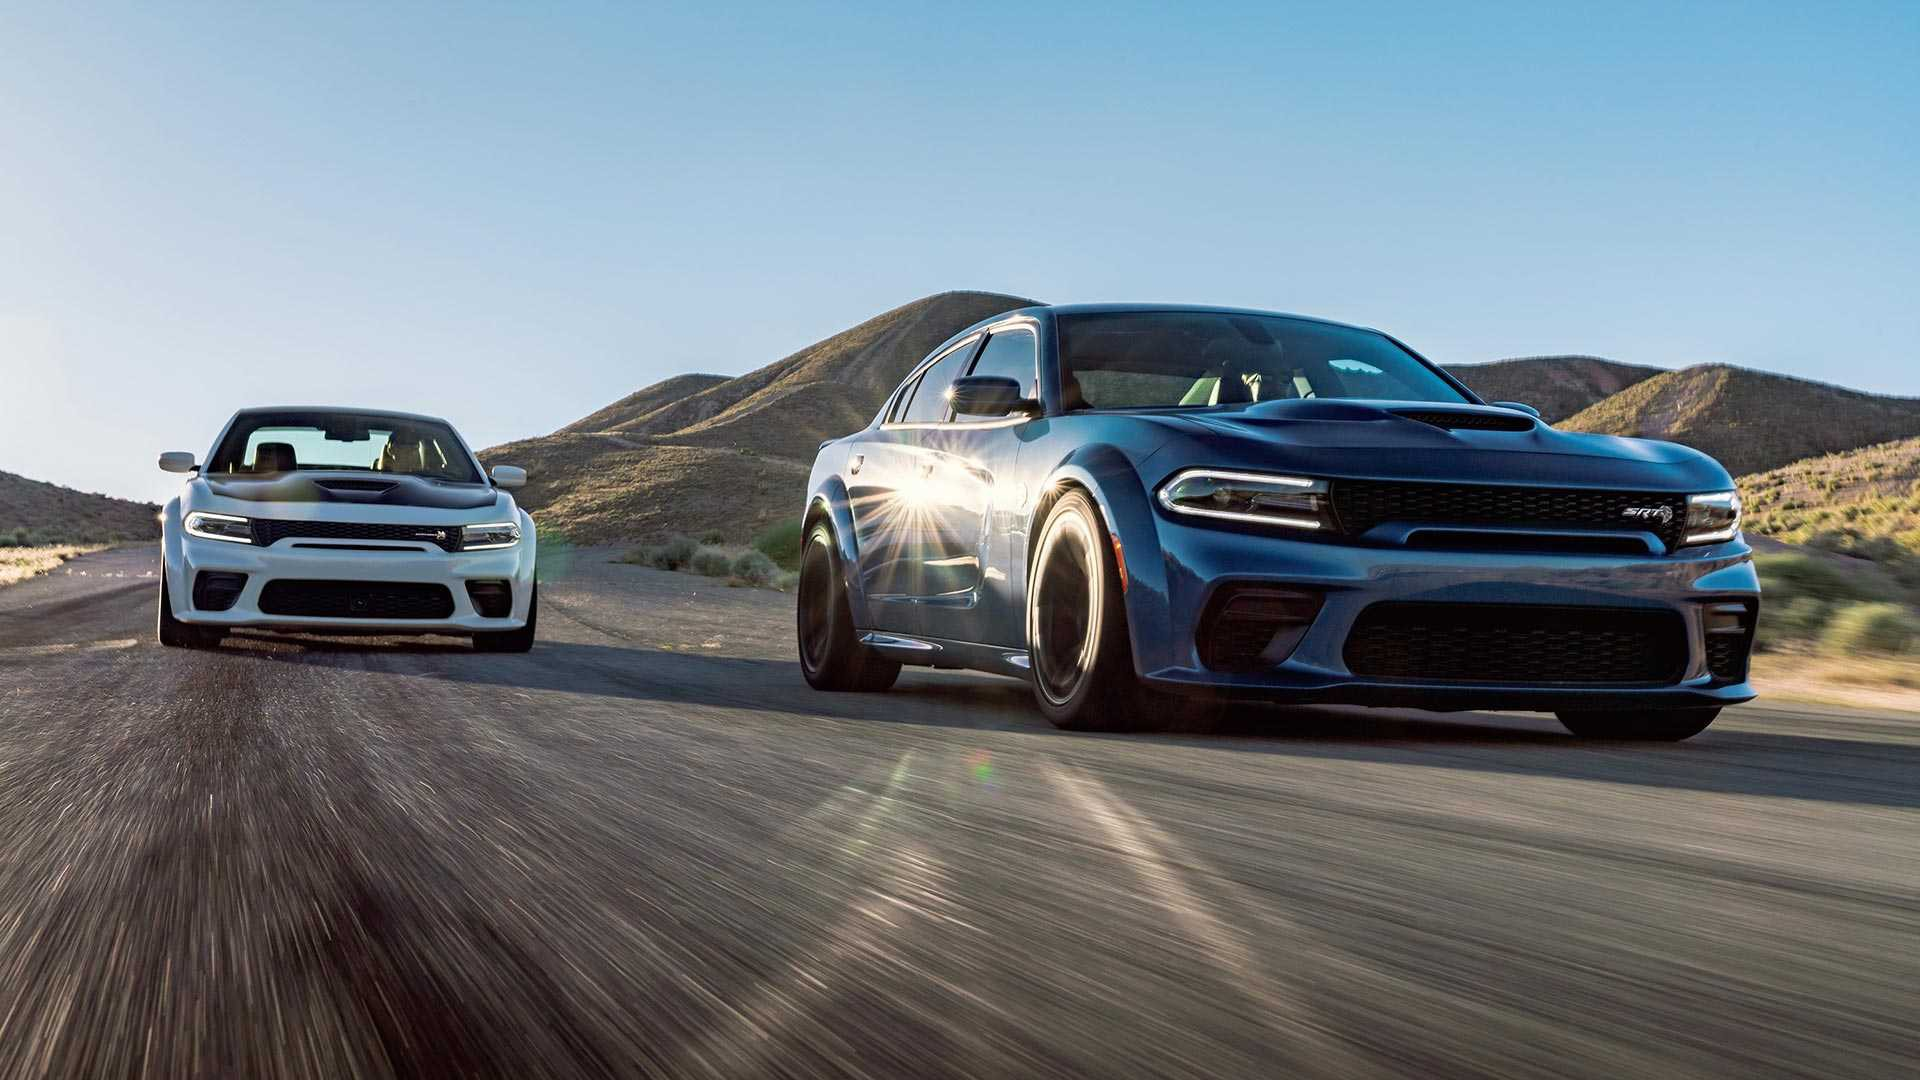 2020 dodge charger srt hellcat widebody and 2020 dodge charger scat pack widebody (3)